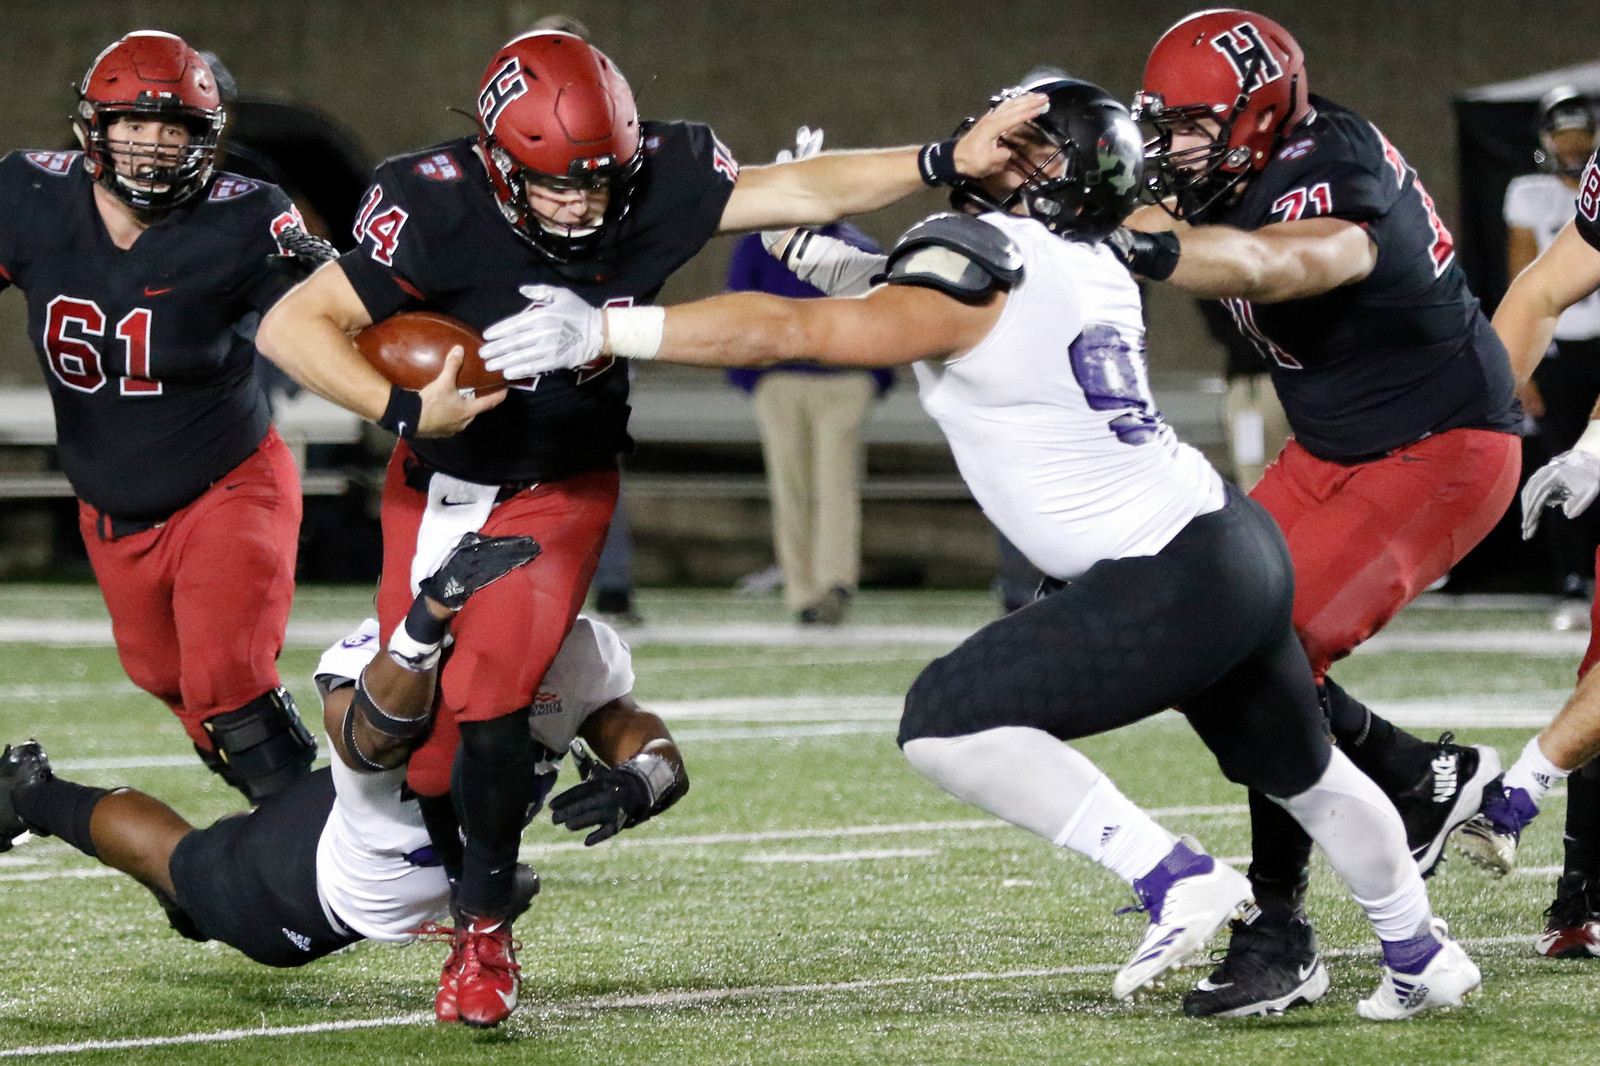 Quarterback Tom Stewart puts down a nice stiff-arm as he shakes off two tackles in Friday night's contest with Holy Cross.